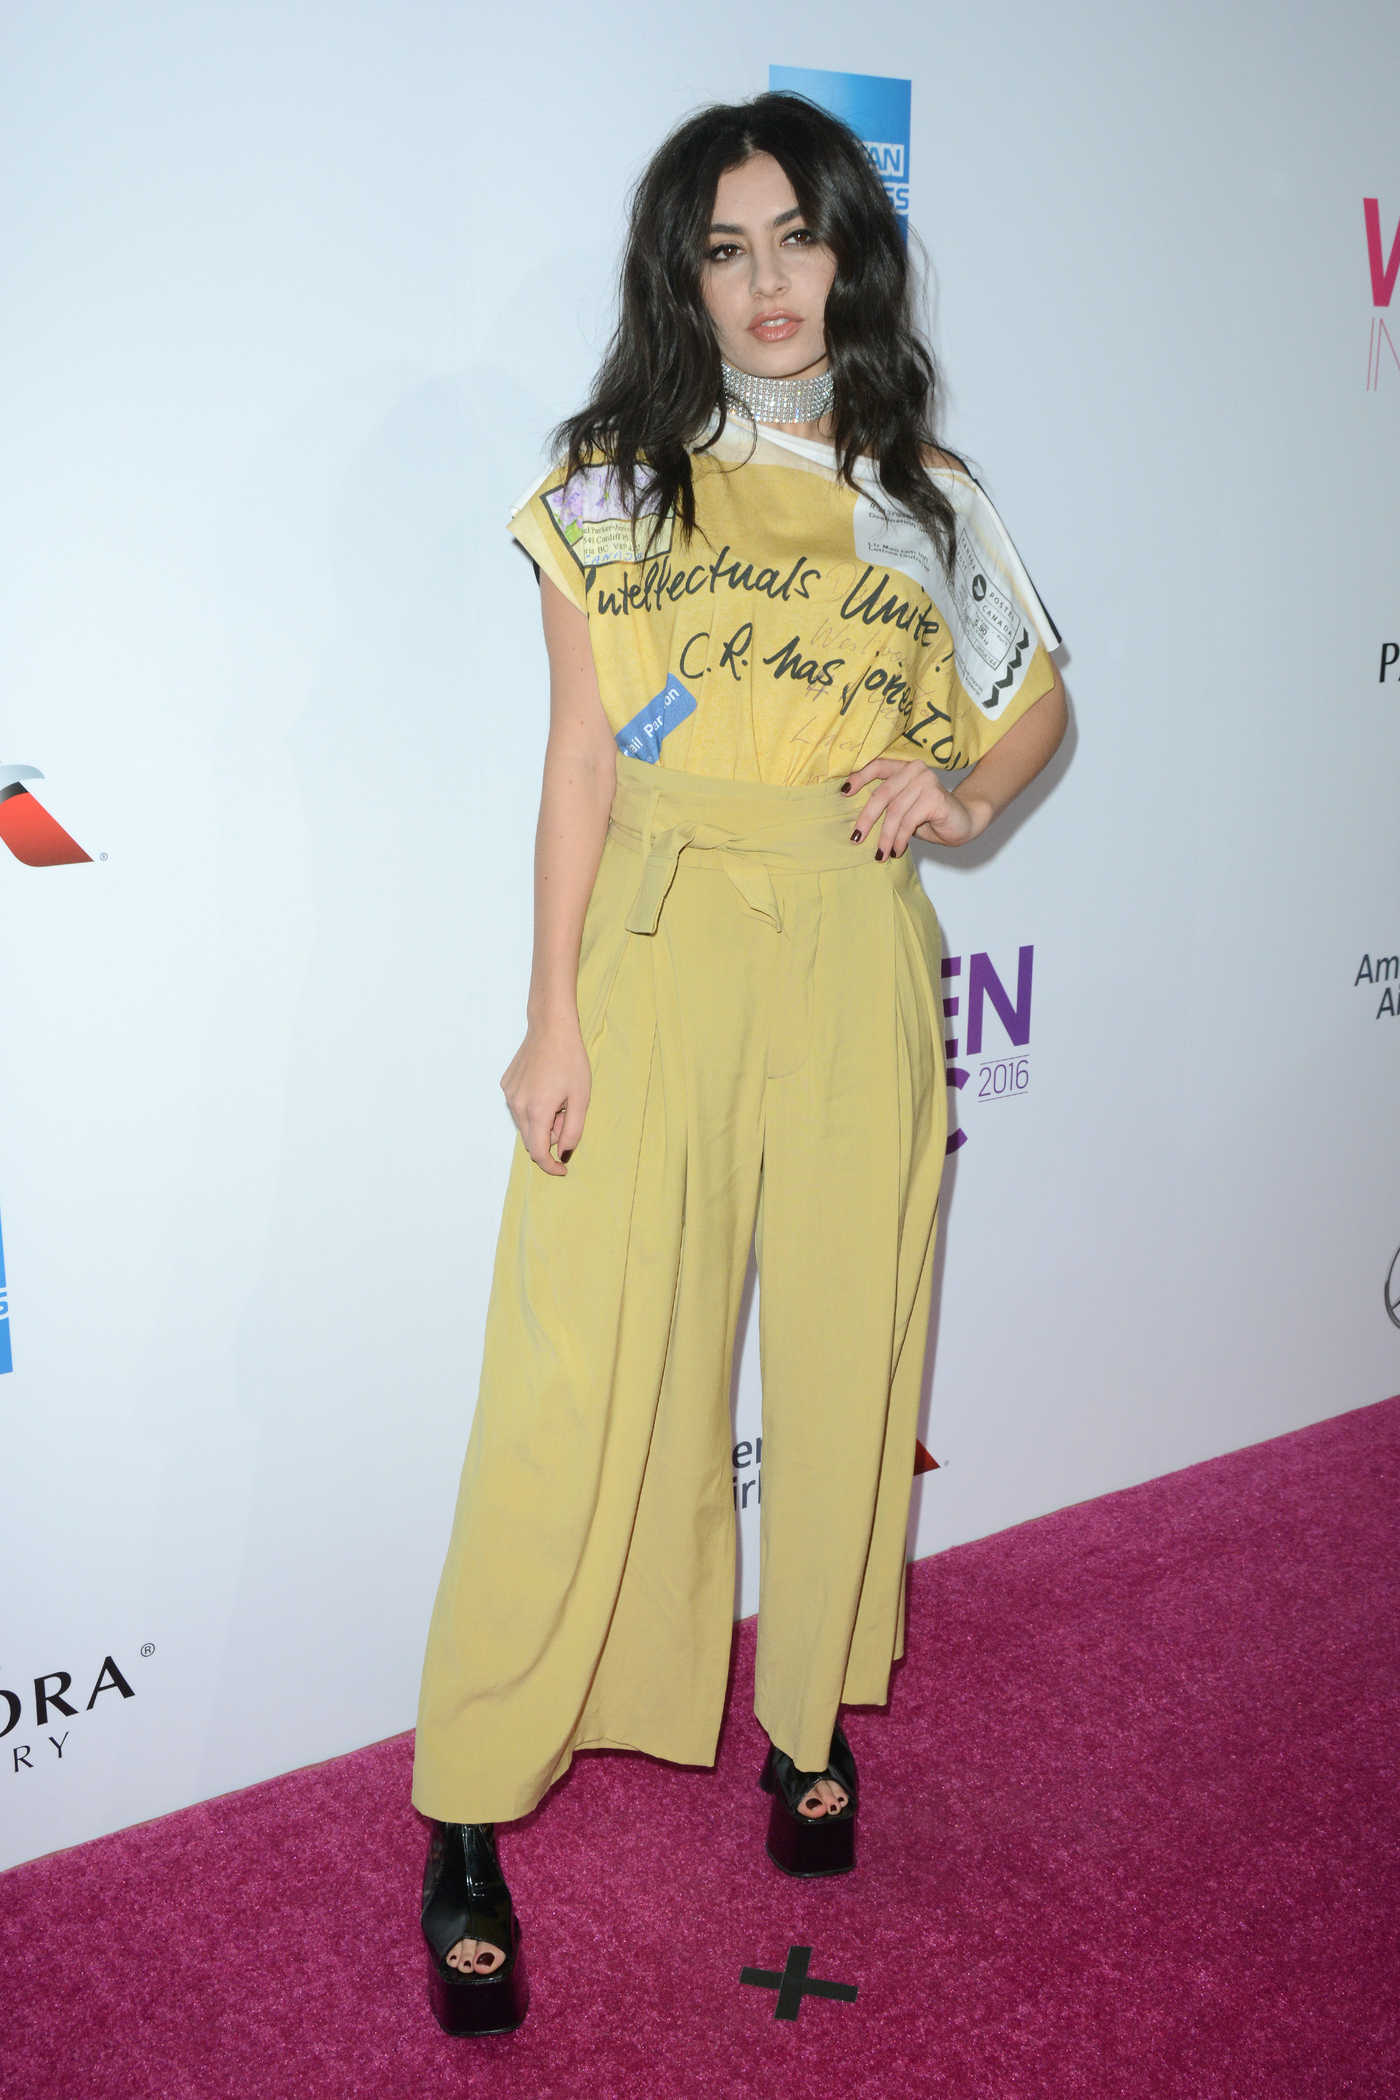 Charli XCX at the Billboard Women in Music 2016 Event at Pier 36 in NYC 12/09/2016